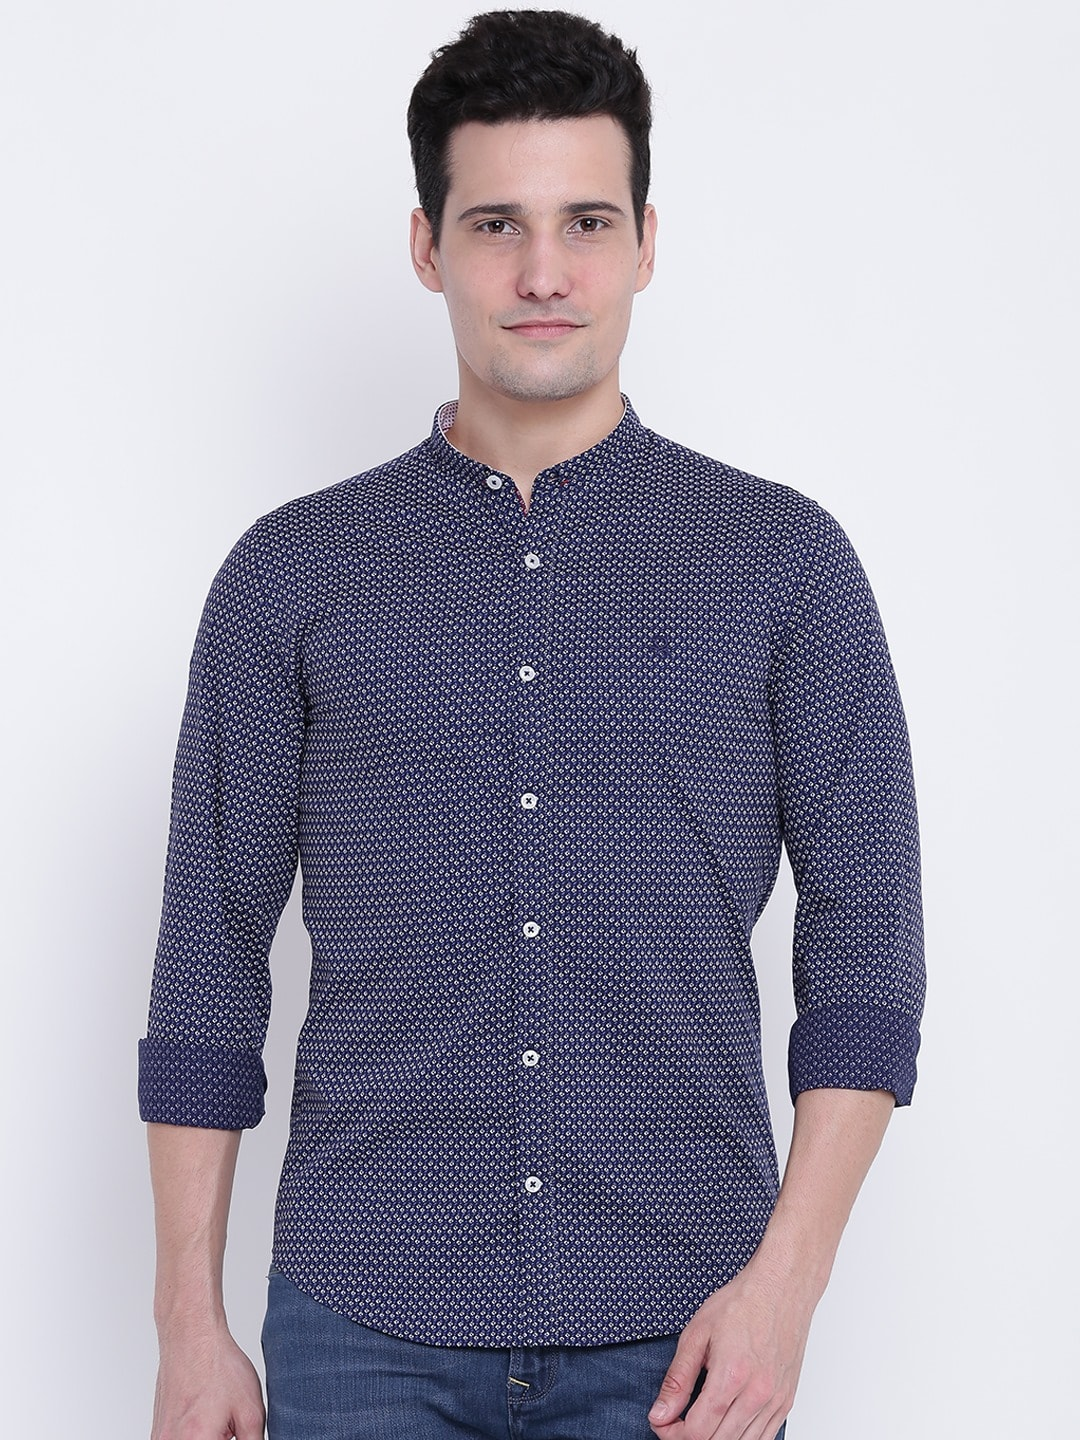 United Colors of Benetton Men Navy & Off-White Slim Fit Printed Casual Shirt image